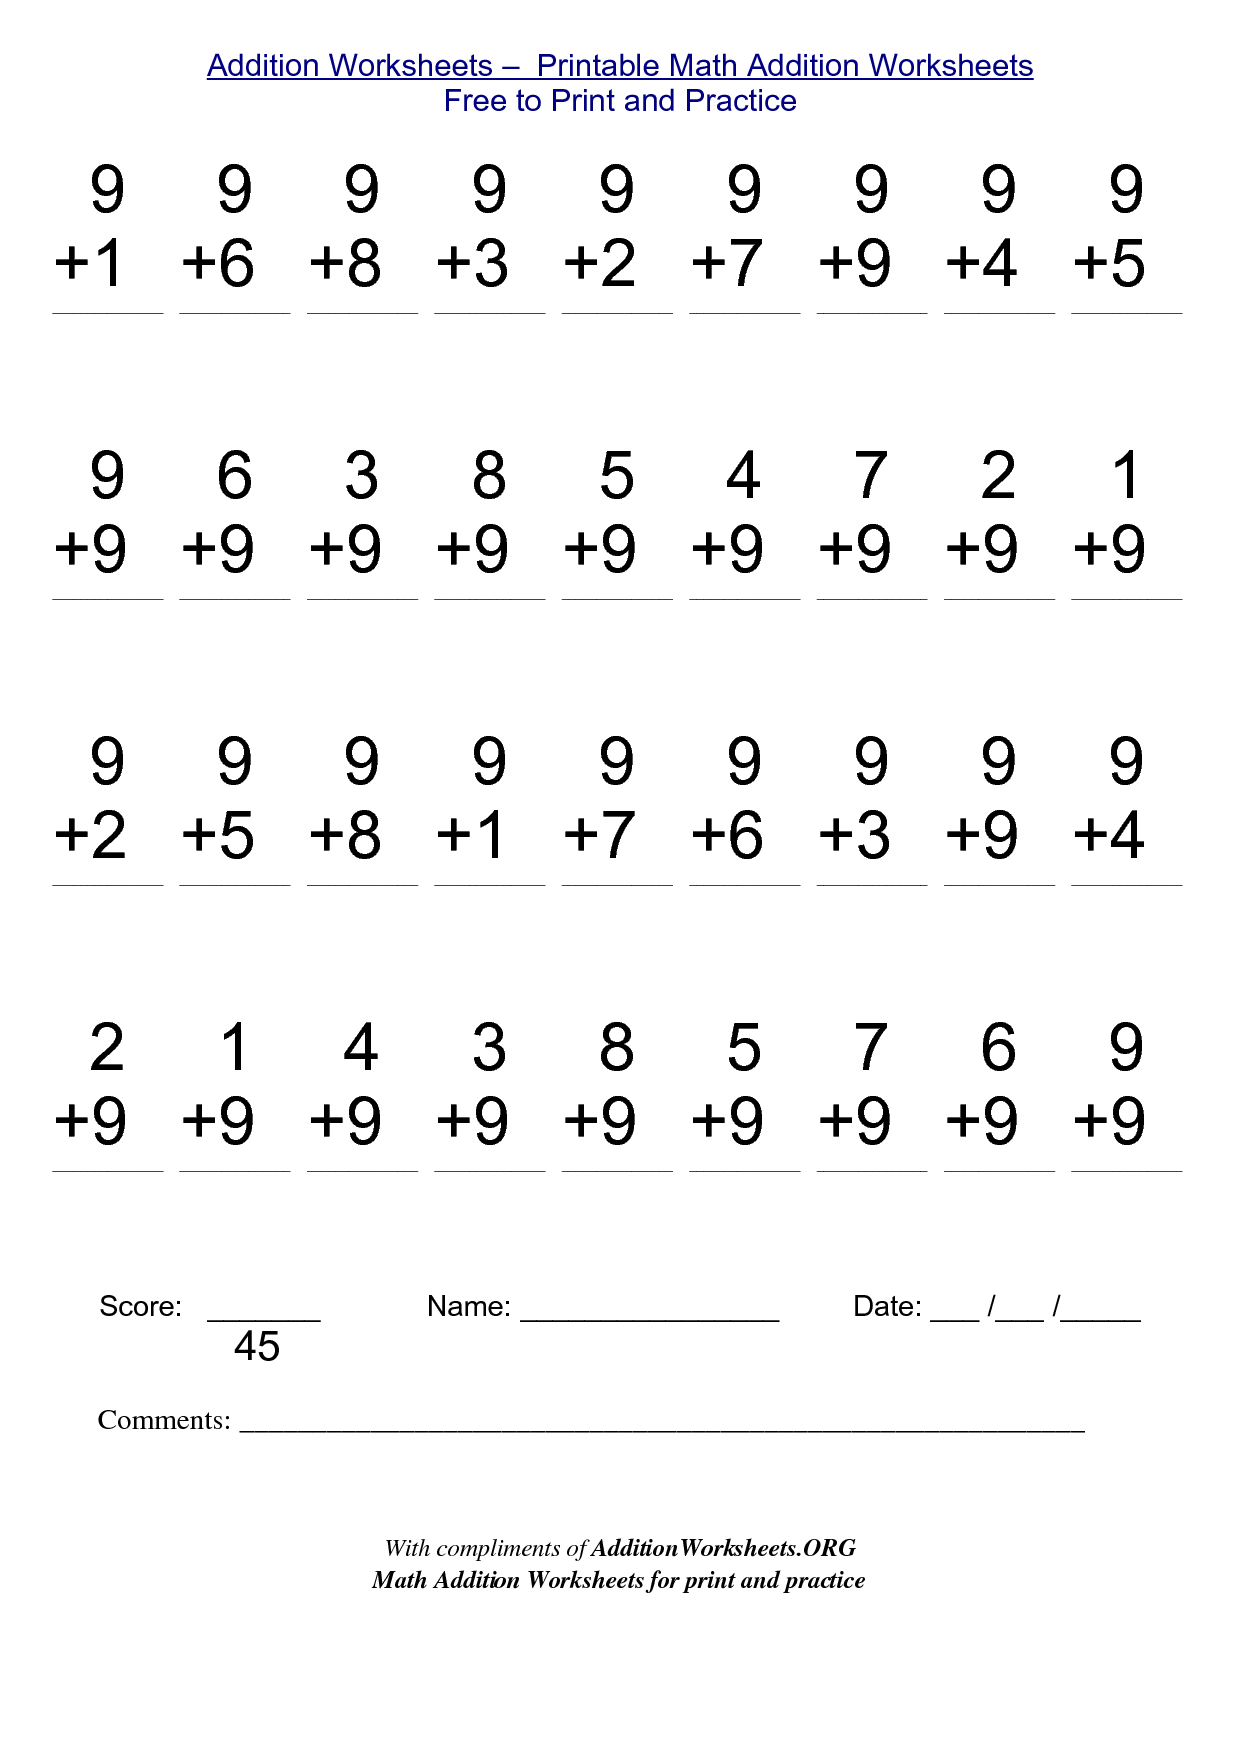 Math Worksheets for Free to Print Alot ME – Grade 5 Math Printable Worksheets